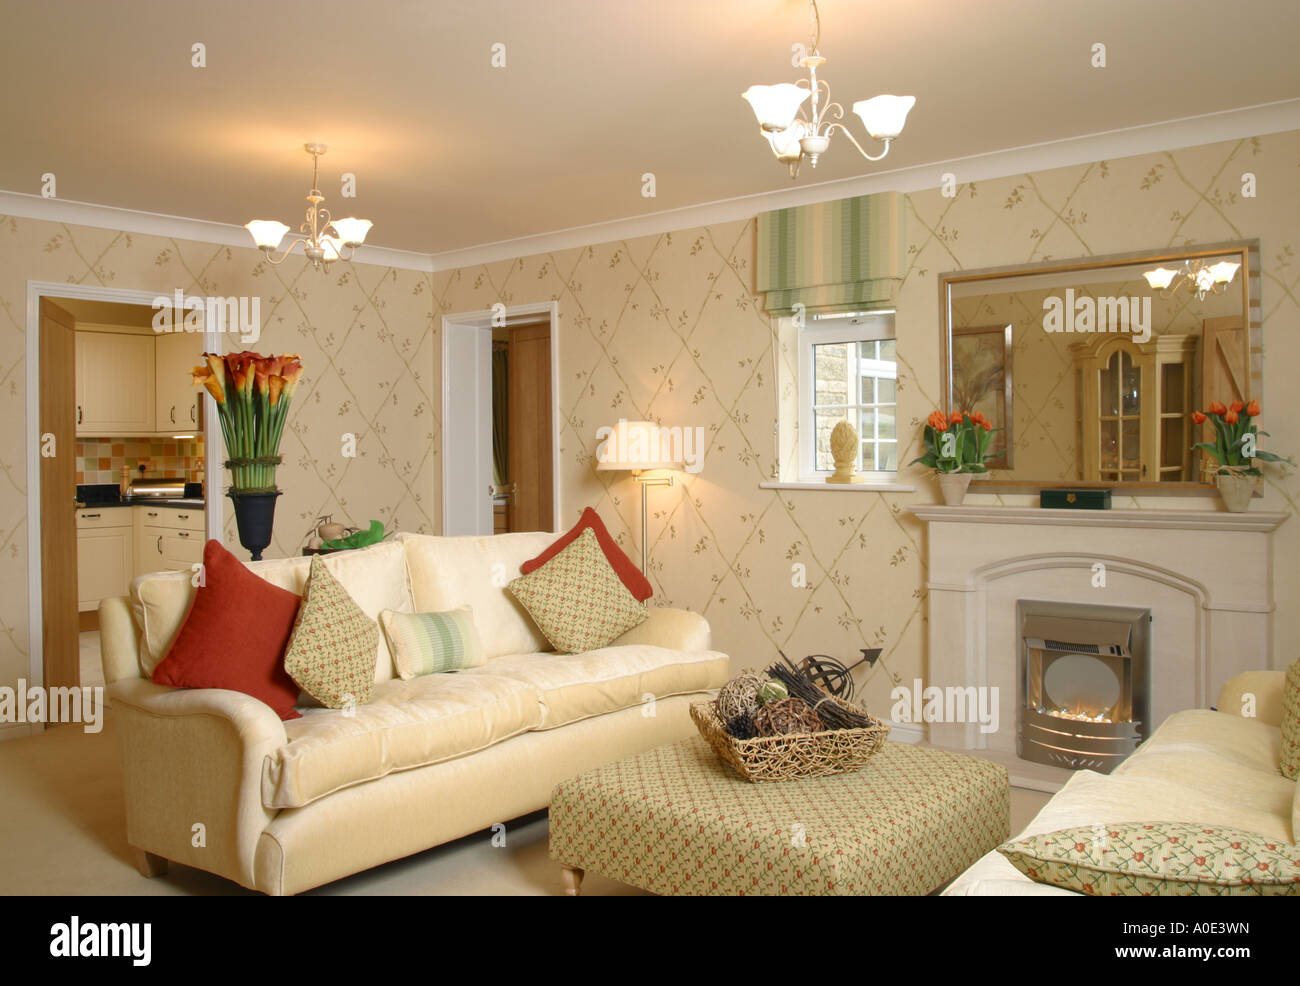 Living Room Shows Property Show Home Interior Furnished Living Room Stock Photo Royalty .